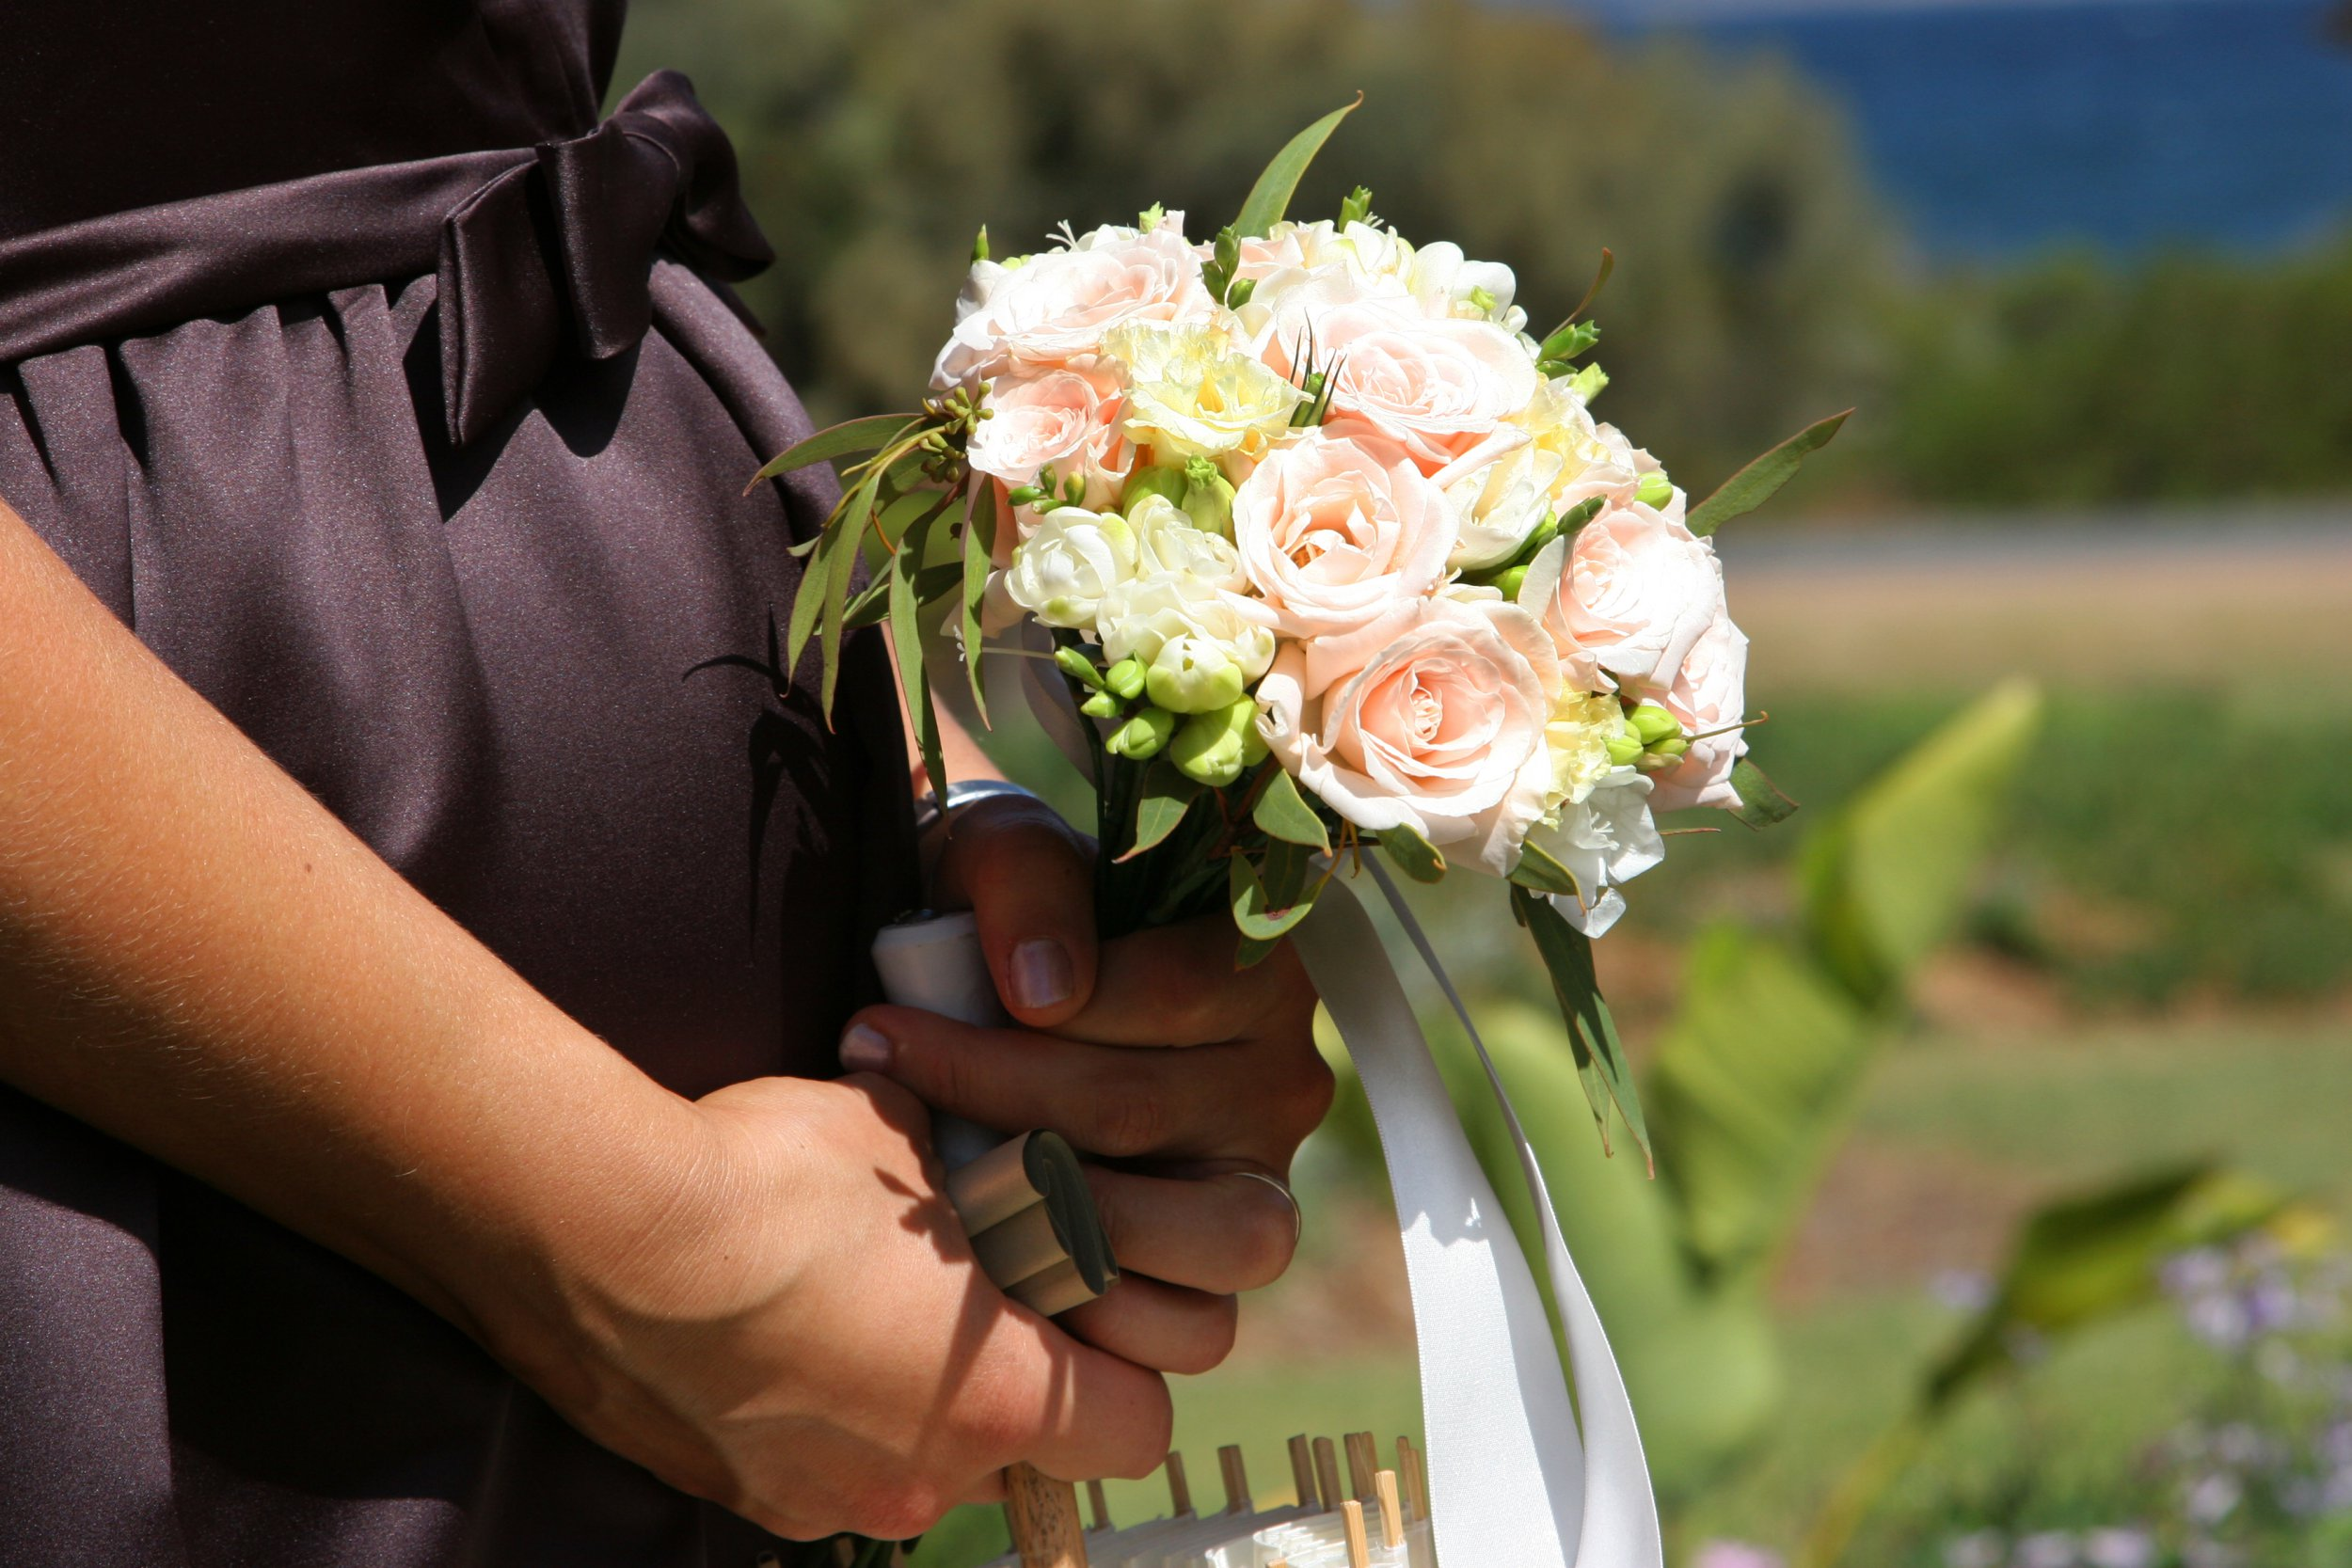 A bridesmaid with her flowers and parasol